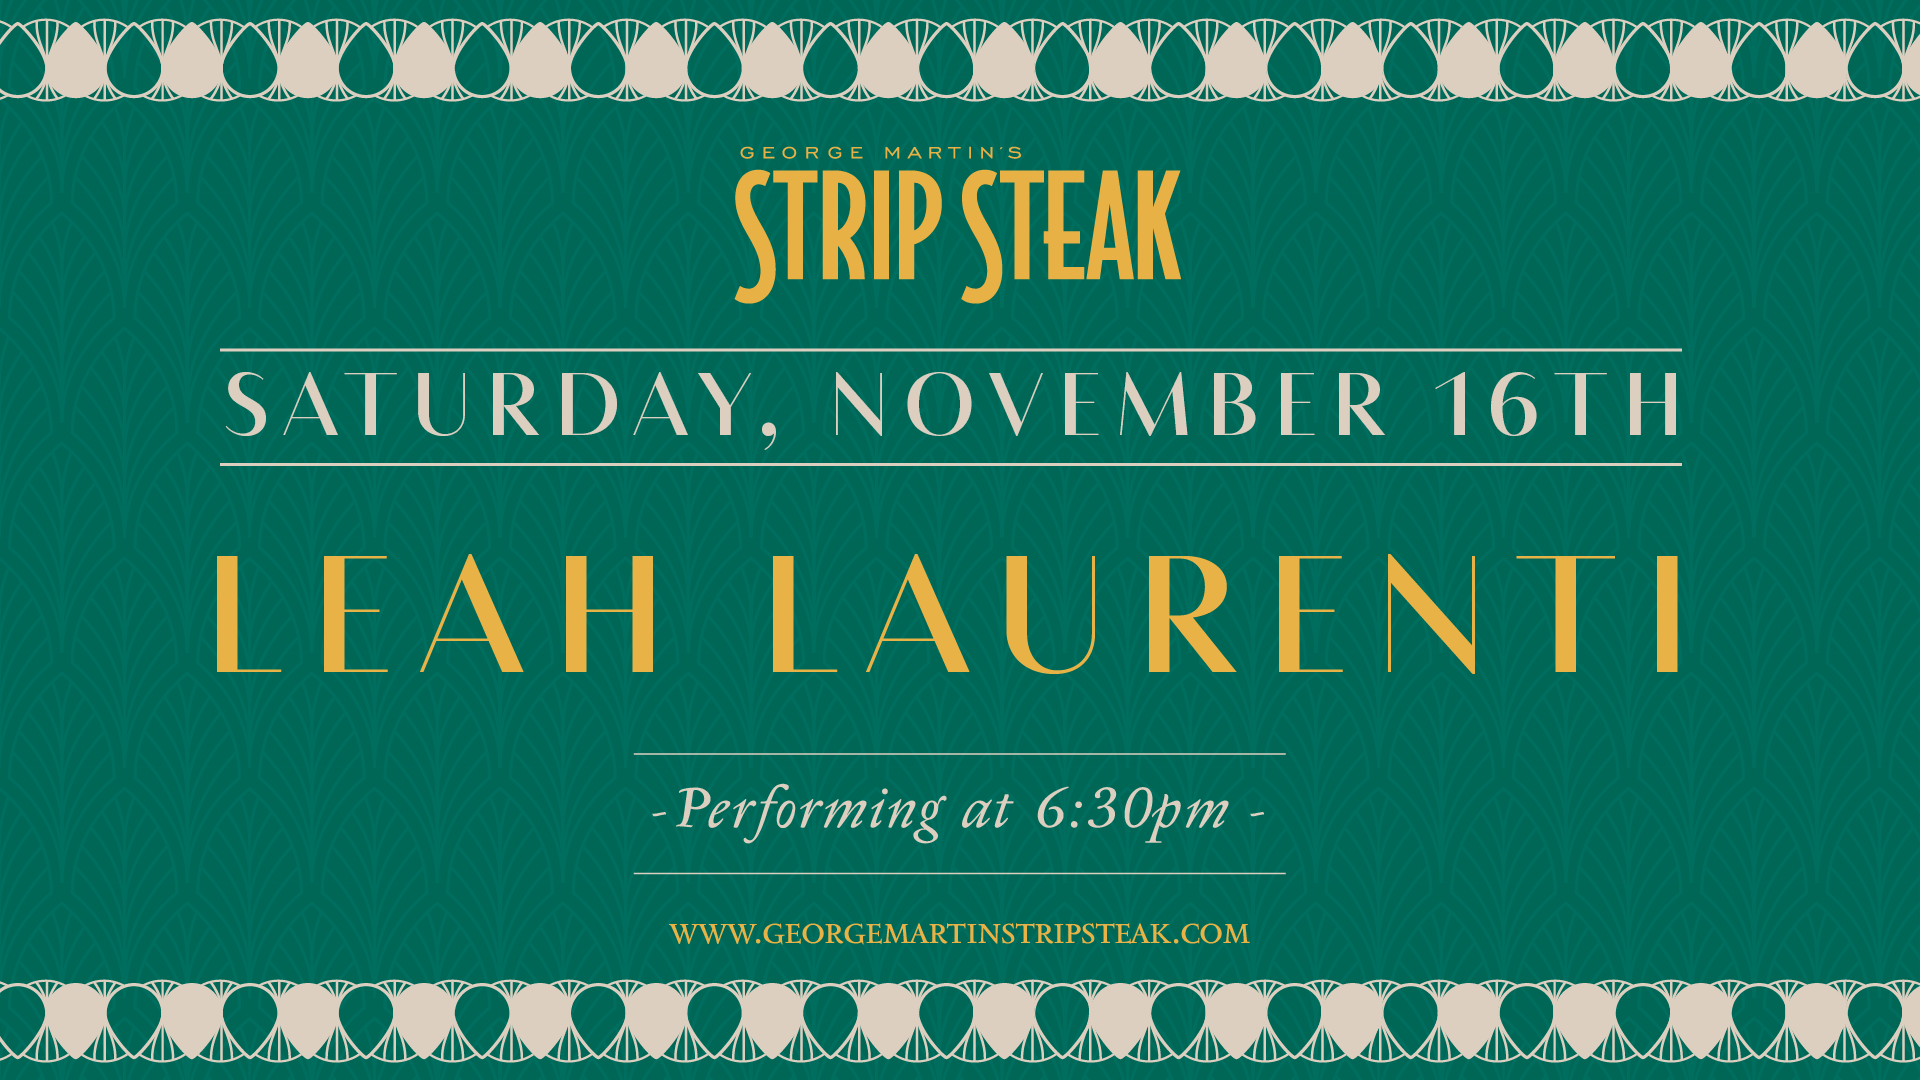 Flyer for Saturday, November 16th with Leah Laurenti performing at 6:30pm.